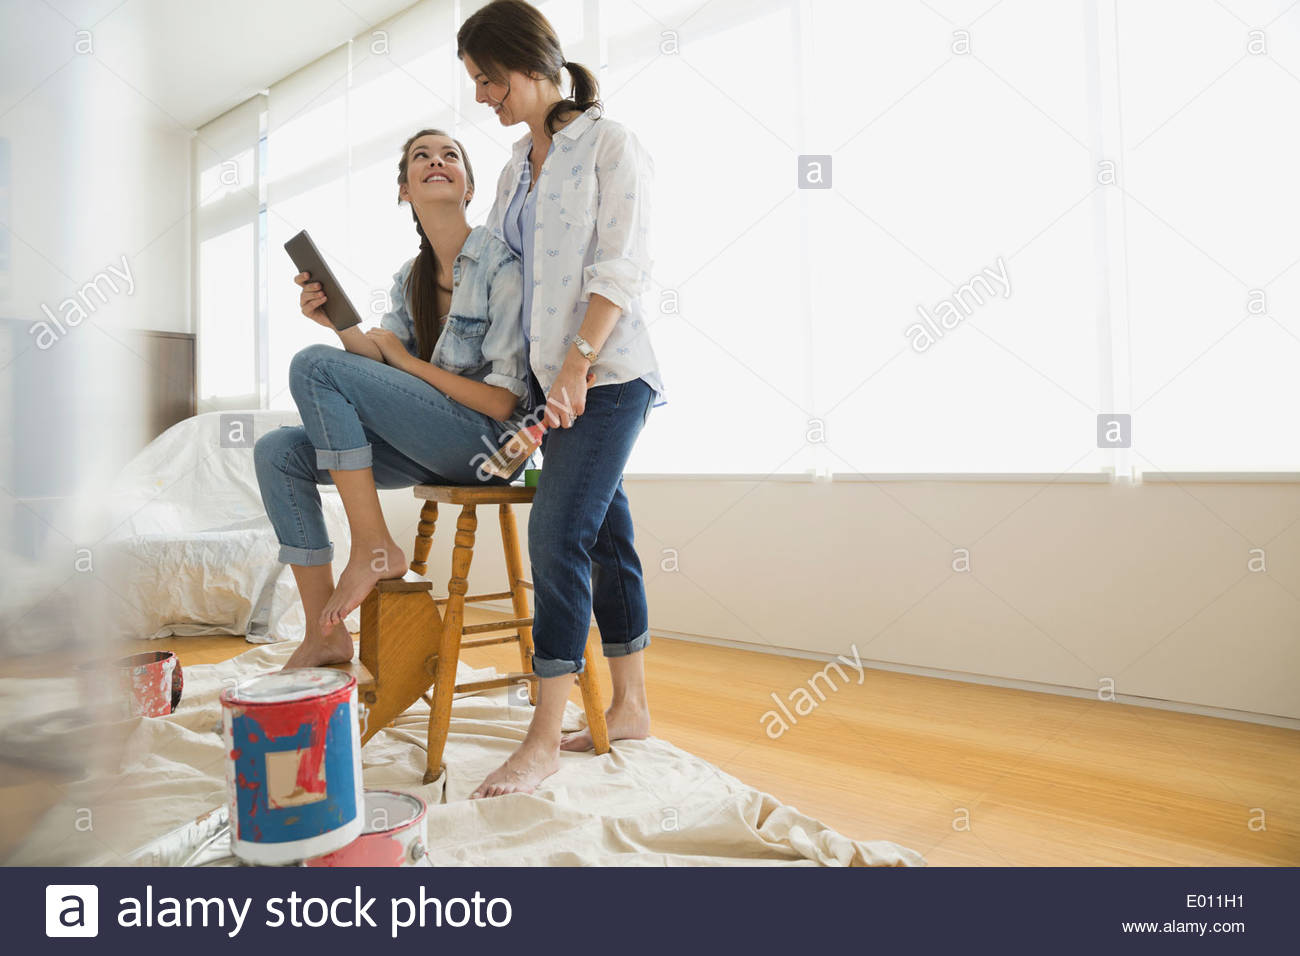 Mother and daughter preparing to paint living room - Stock Image